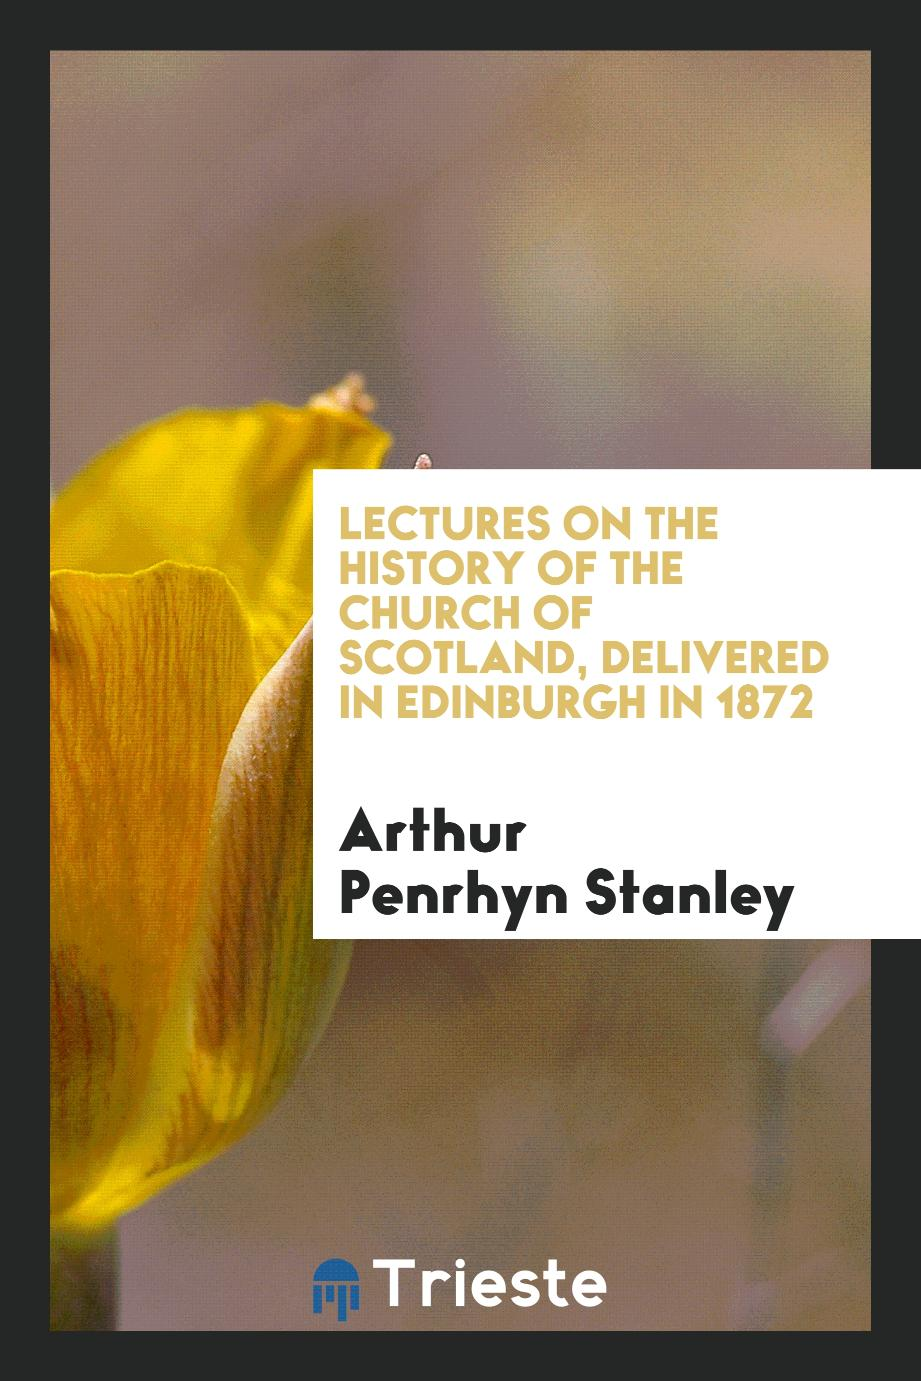 Lectures on the History of the Church of Scotland, Delivered in Edinburgh in 1872